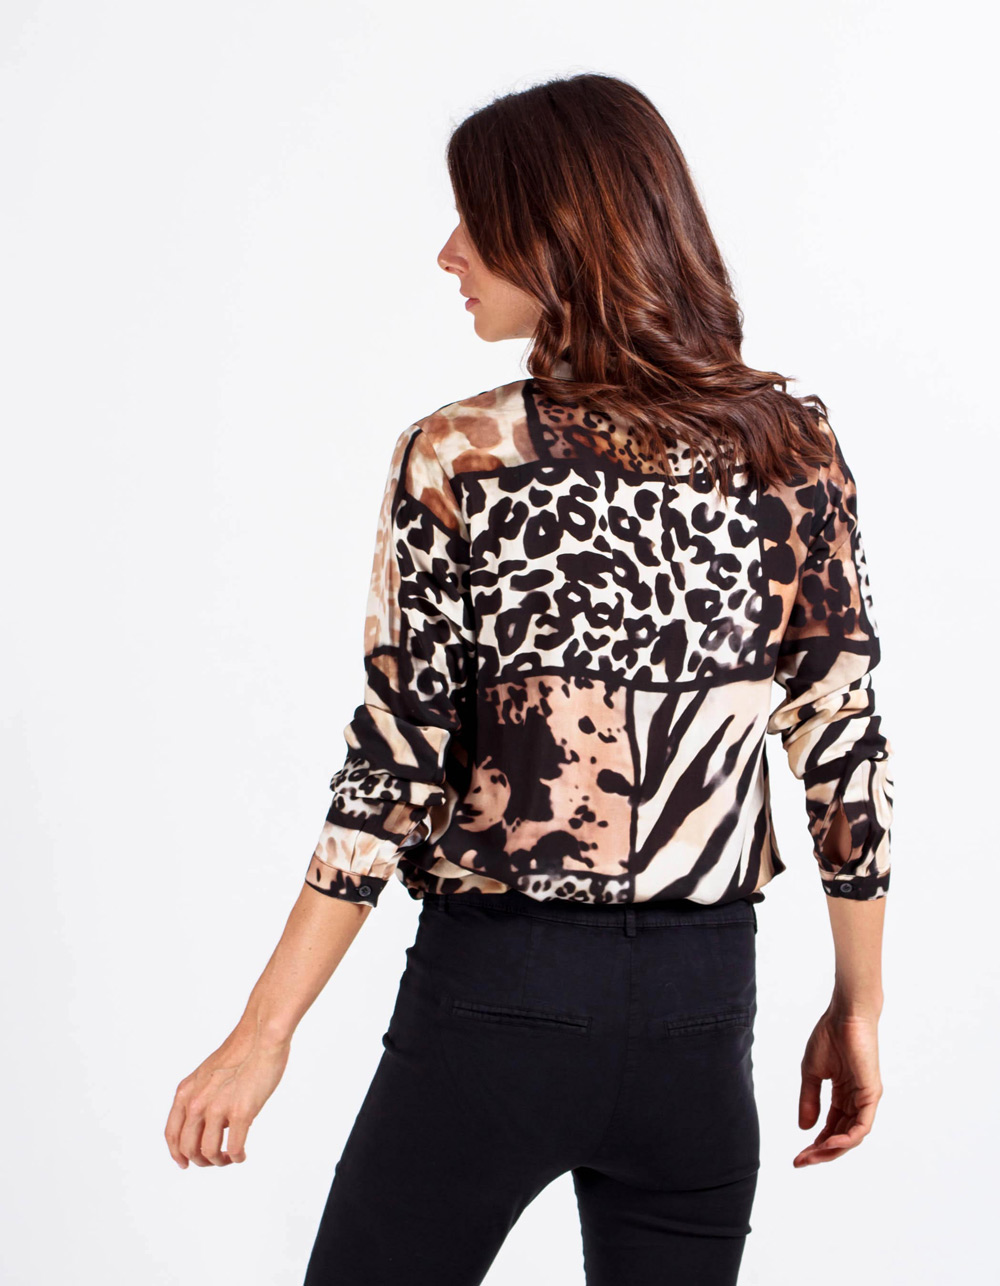 Camisa estampado animal print - Backside